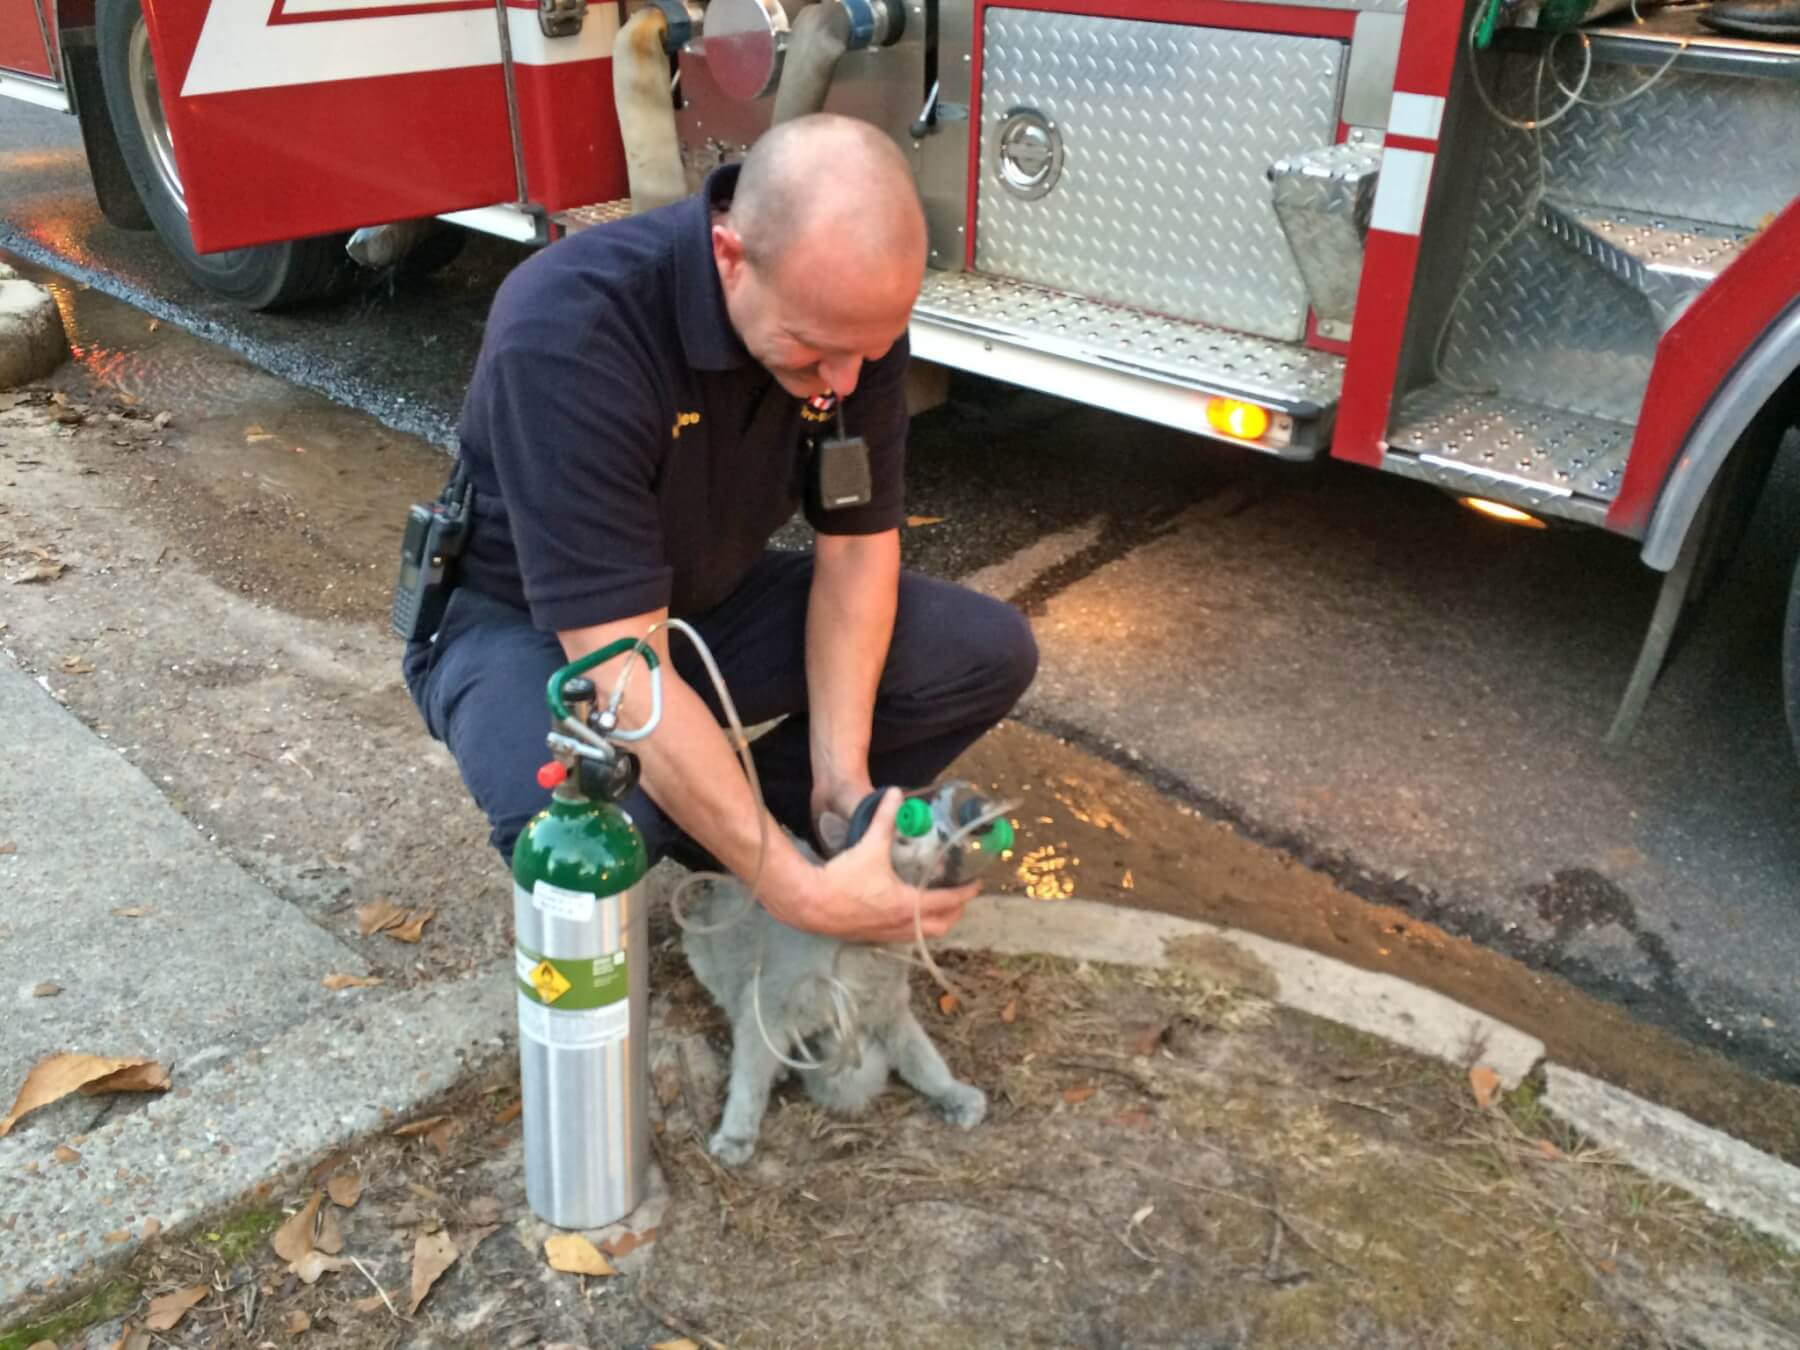 Firefighters rescue several pets from midtown house fire